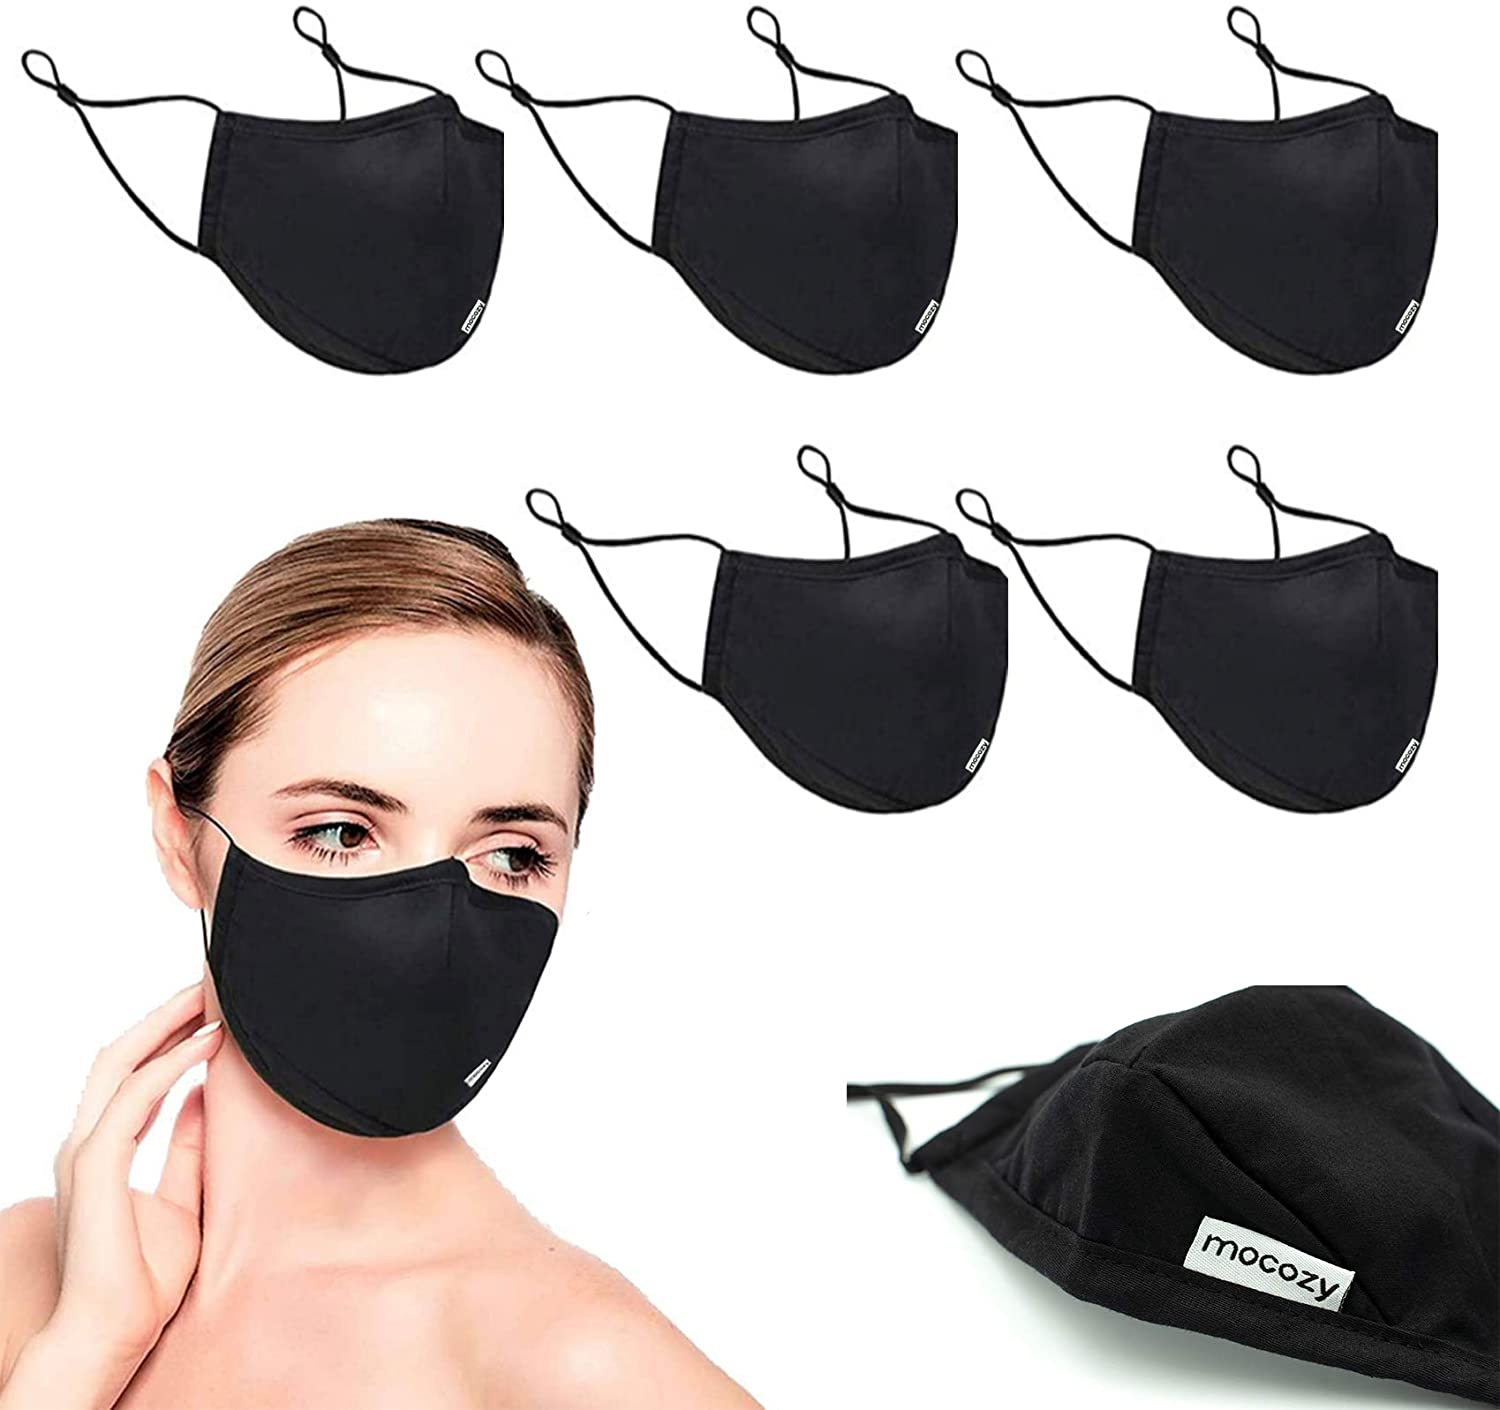 5 Pack 3-Layer Fashion Protective, Reusable Cotton Fabric, Unisex Black Cotton, Washable with Air Port for Carbon Filter